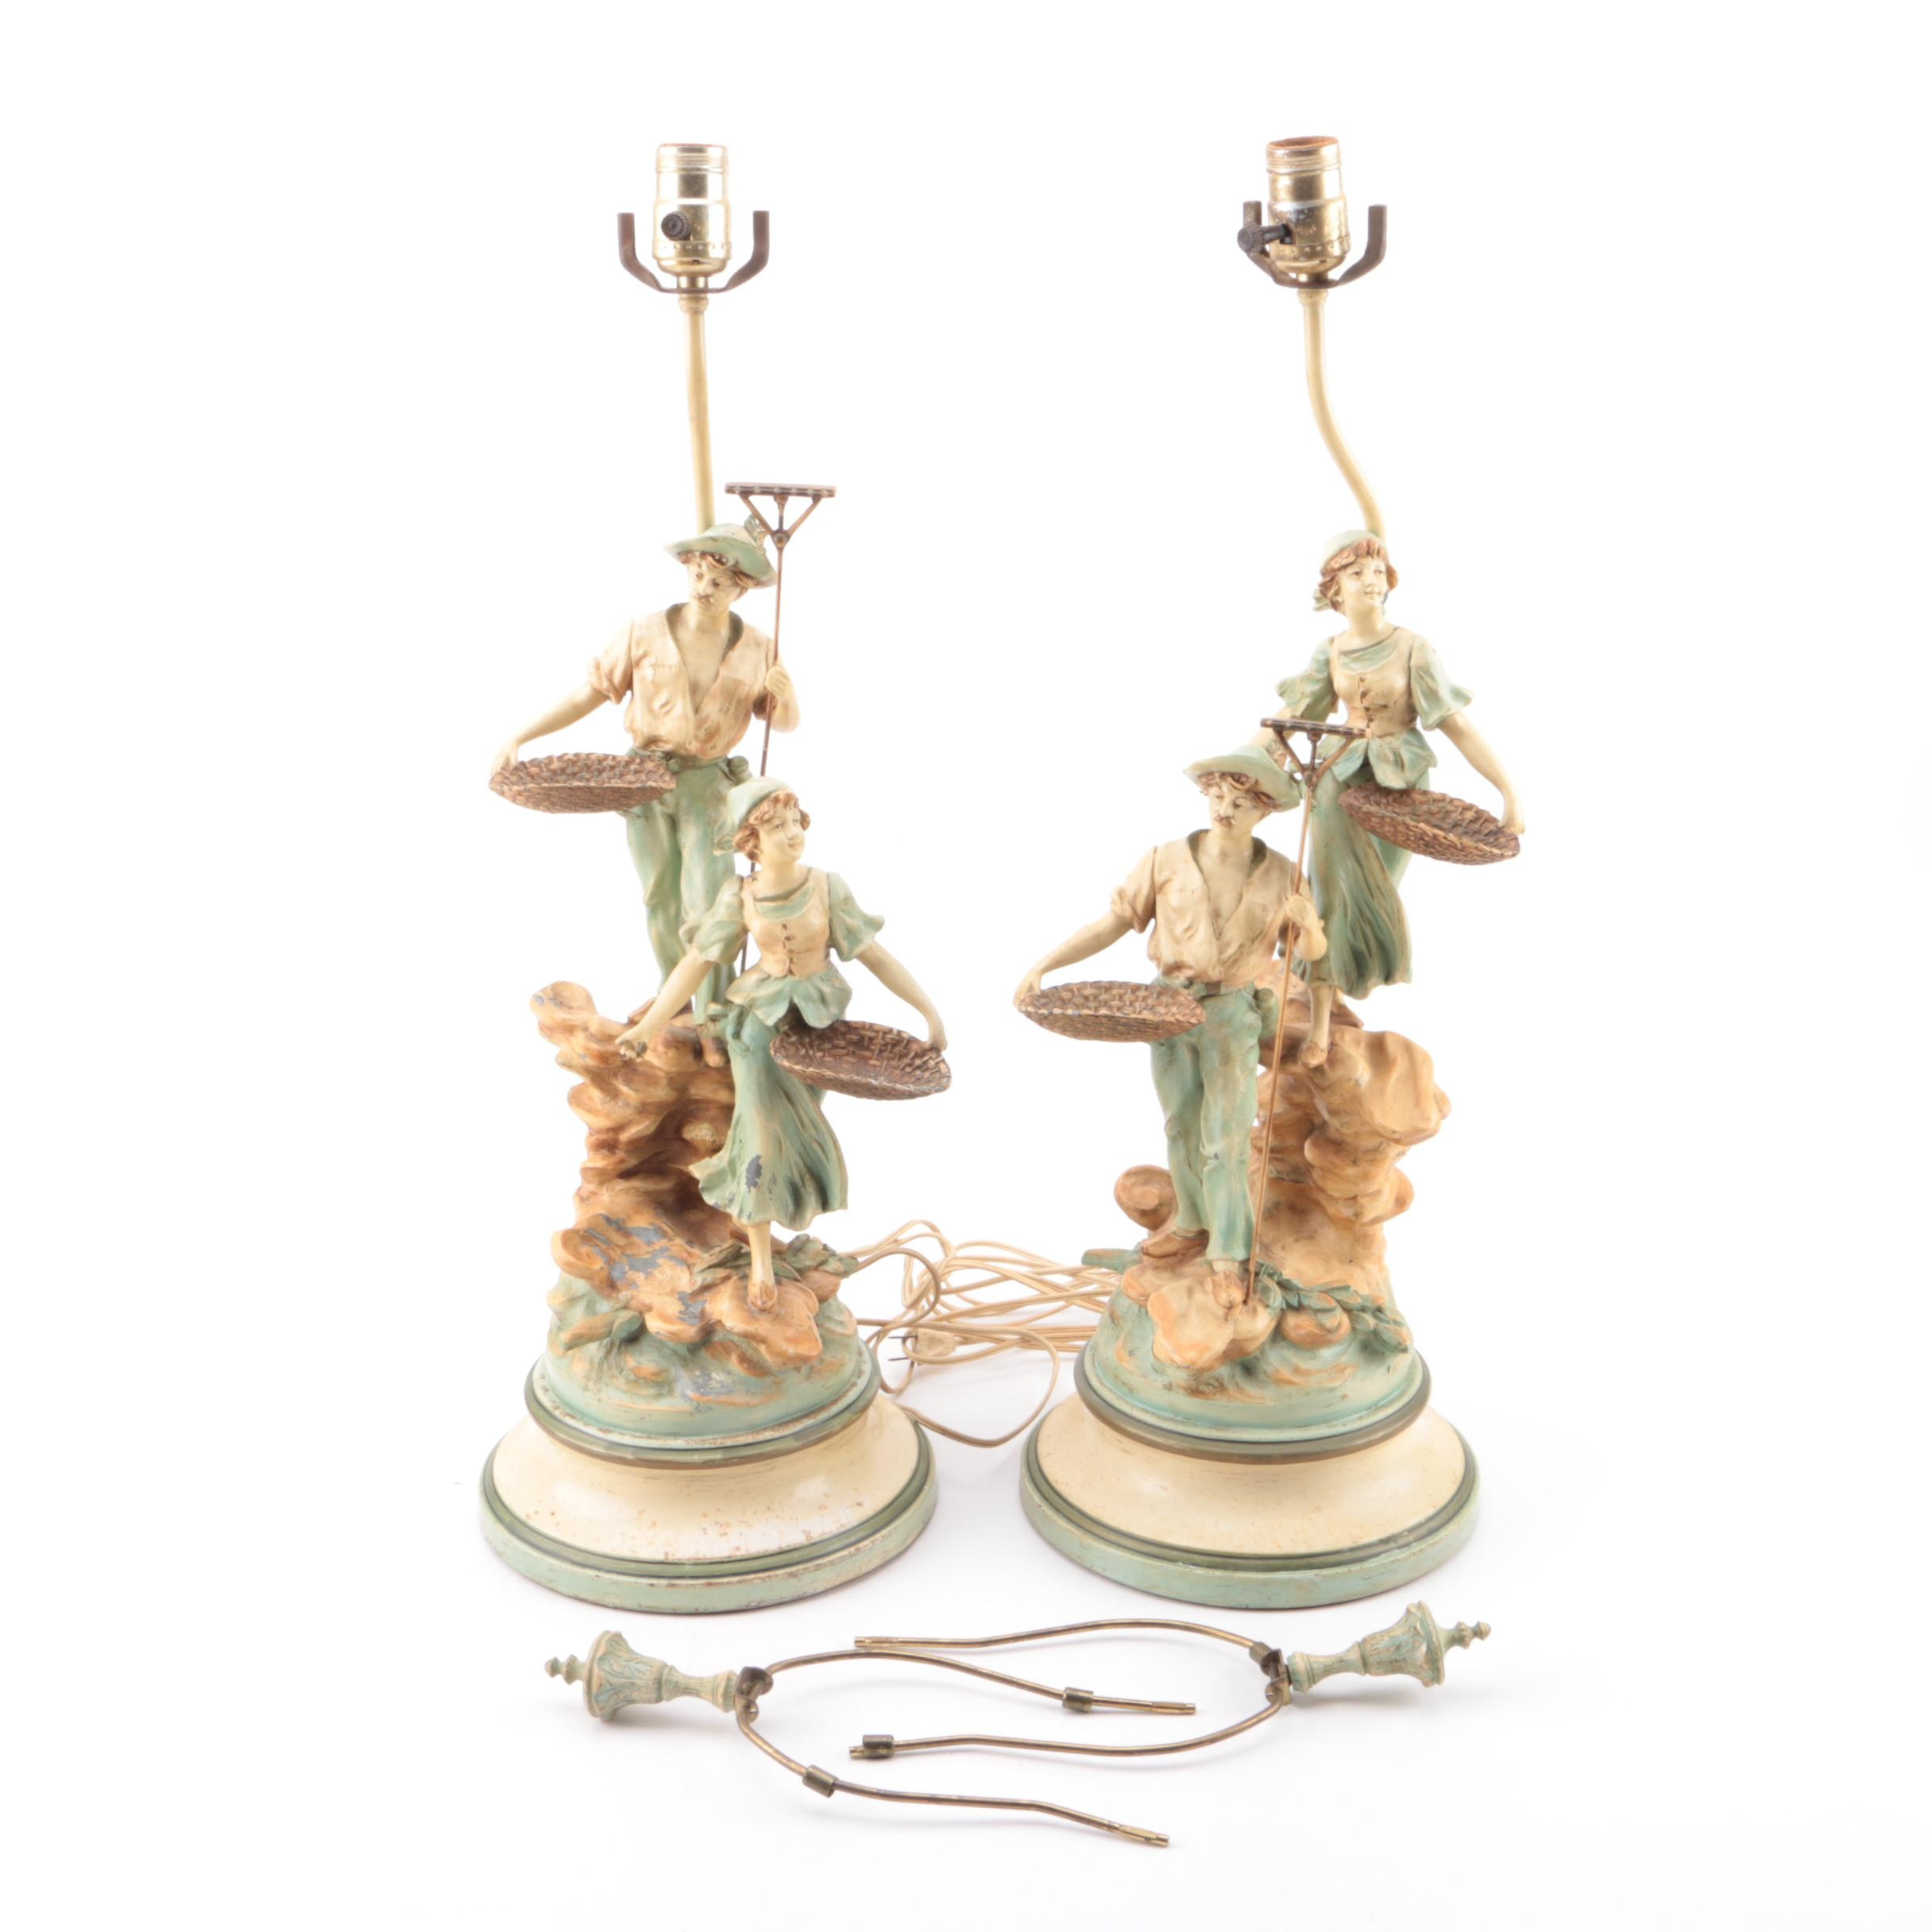 Vintage Figural Peasantry Tableau Spelter Table Lamps after L&F Moreau